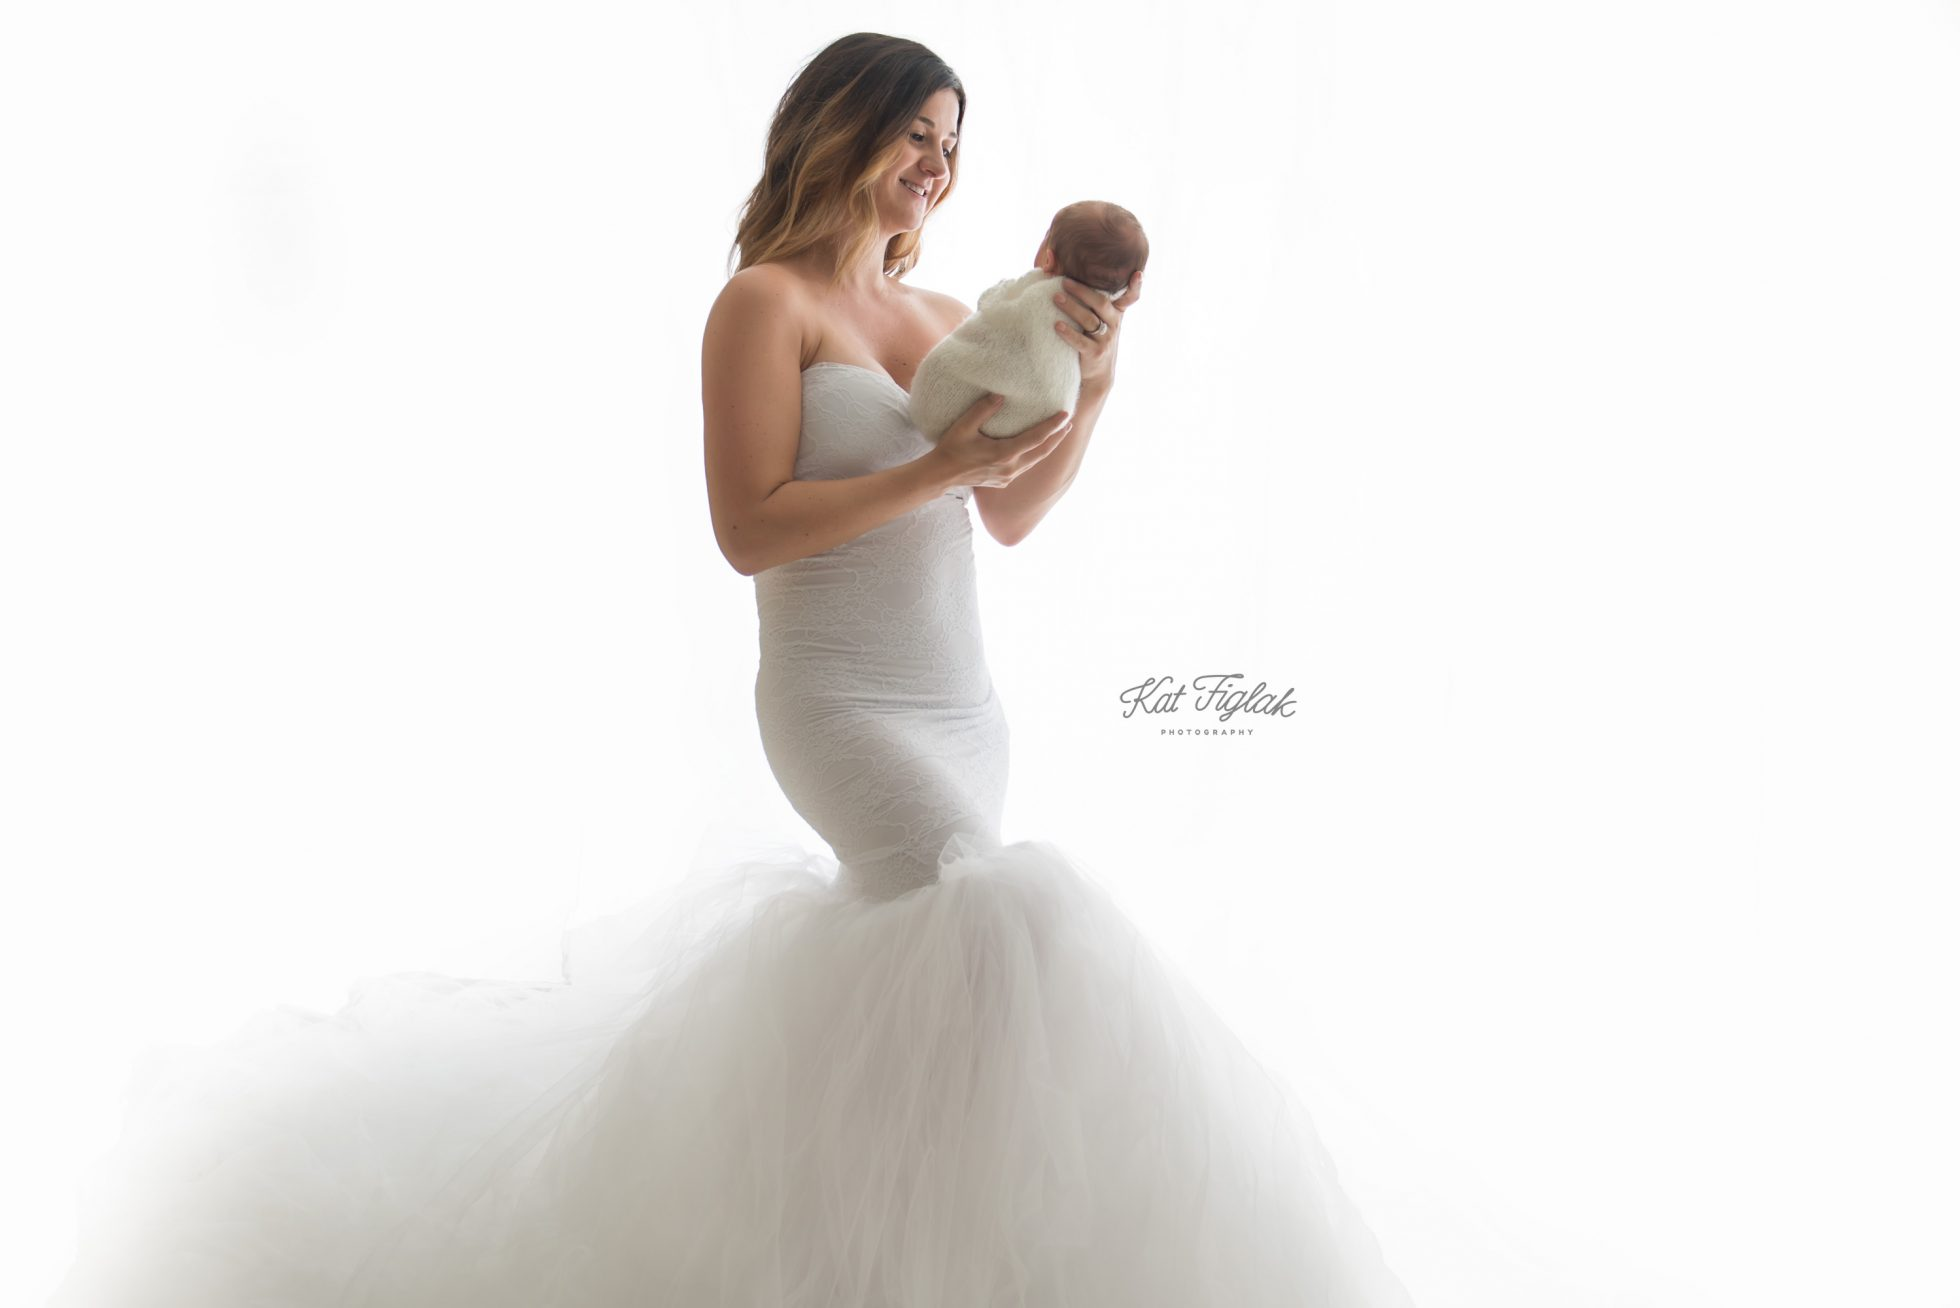 A new mother in a white gown holding her baby girl